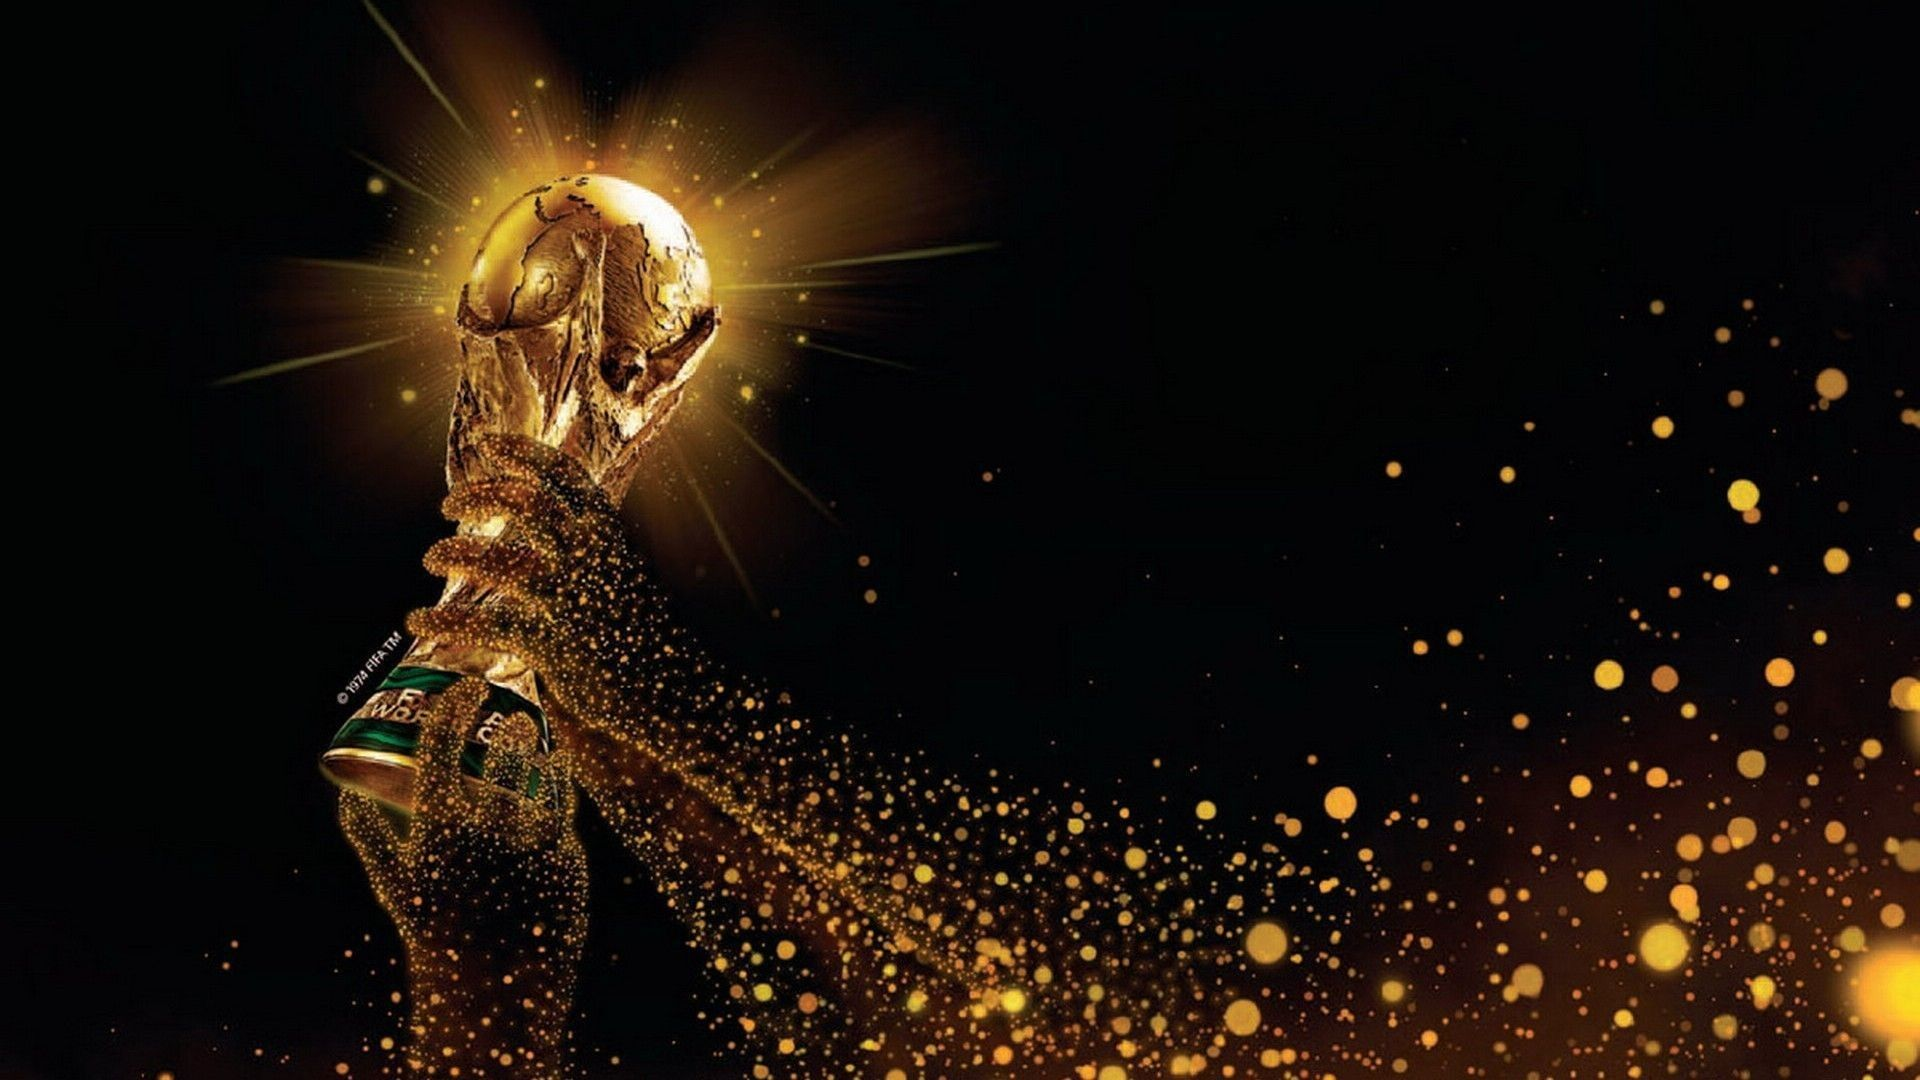 Live Wallpaper Hd Fifa World Cup World Cup World Cup 2014